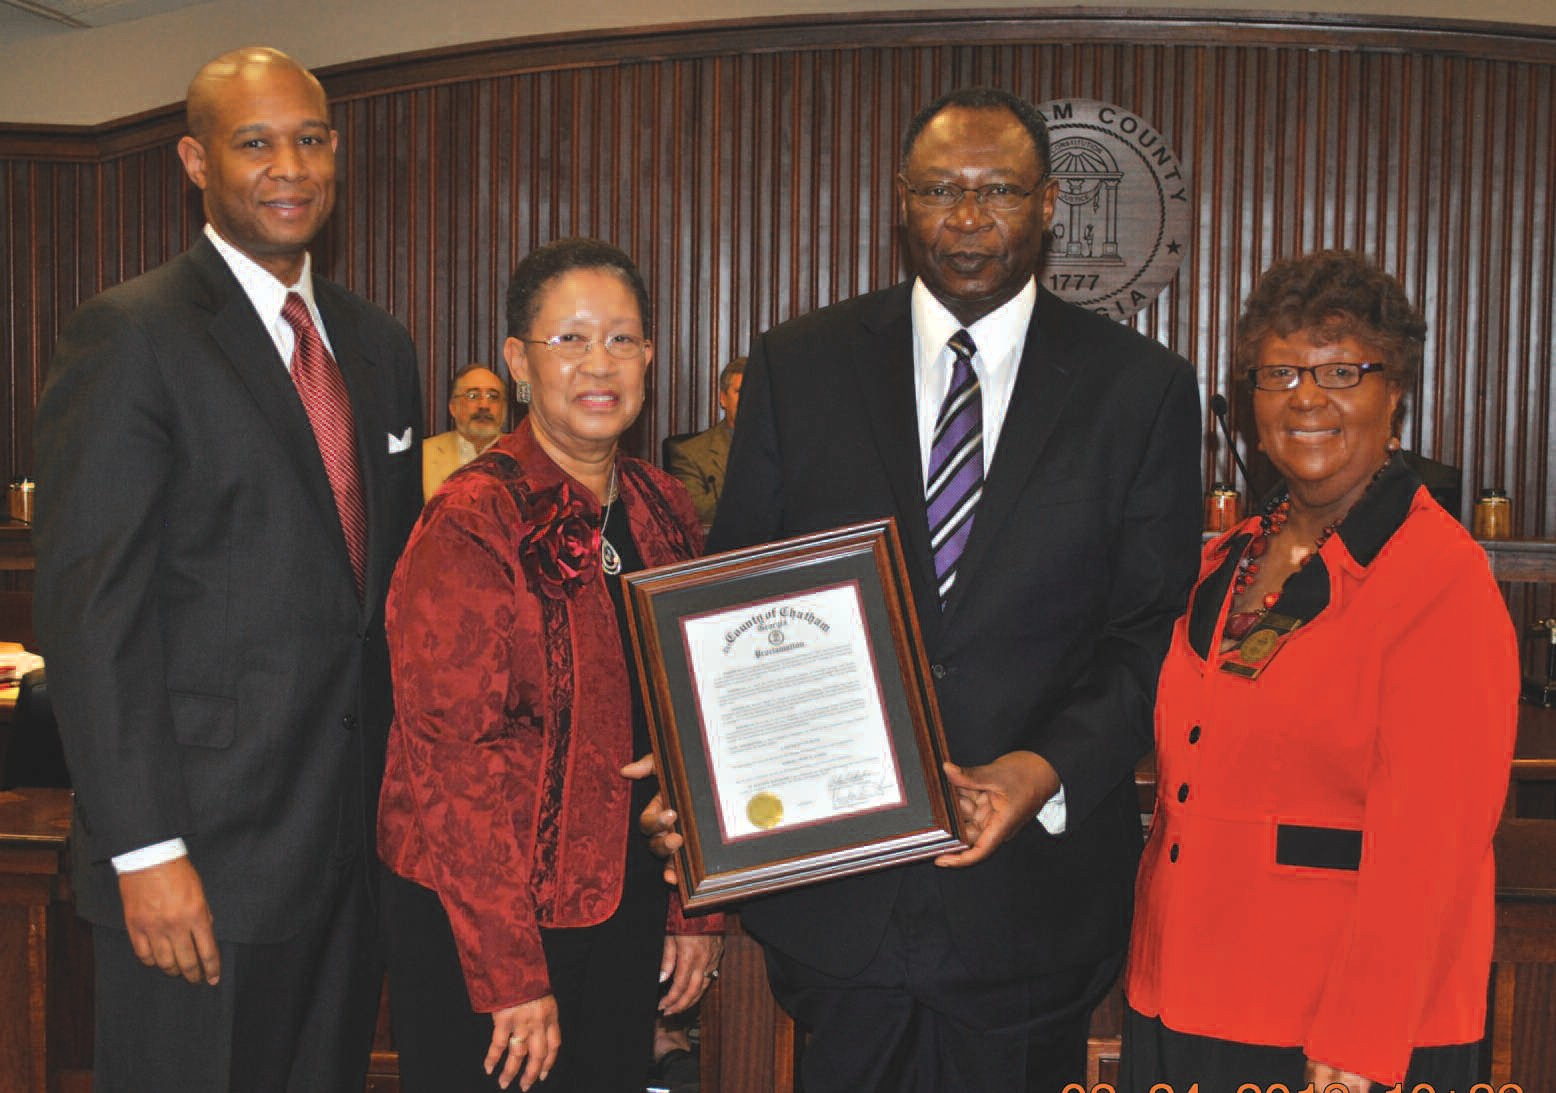 Commissioner Thomas presents proclamation congratulating Carver State Bank on its 85th Anniversary and Mr. Robert